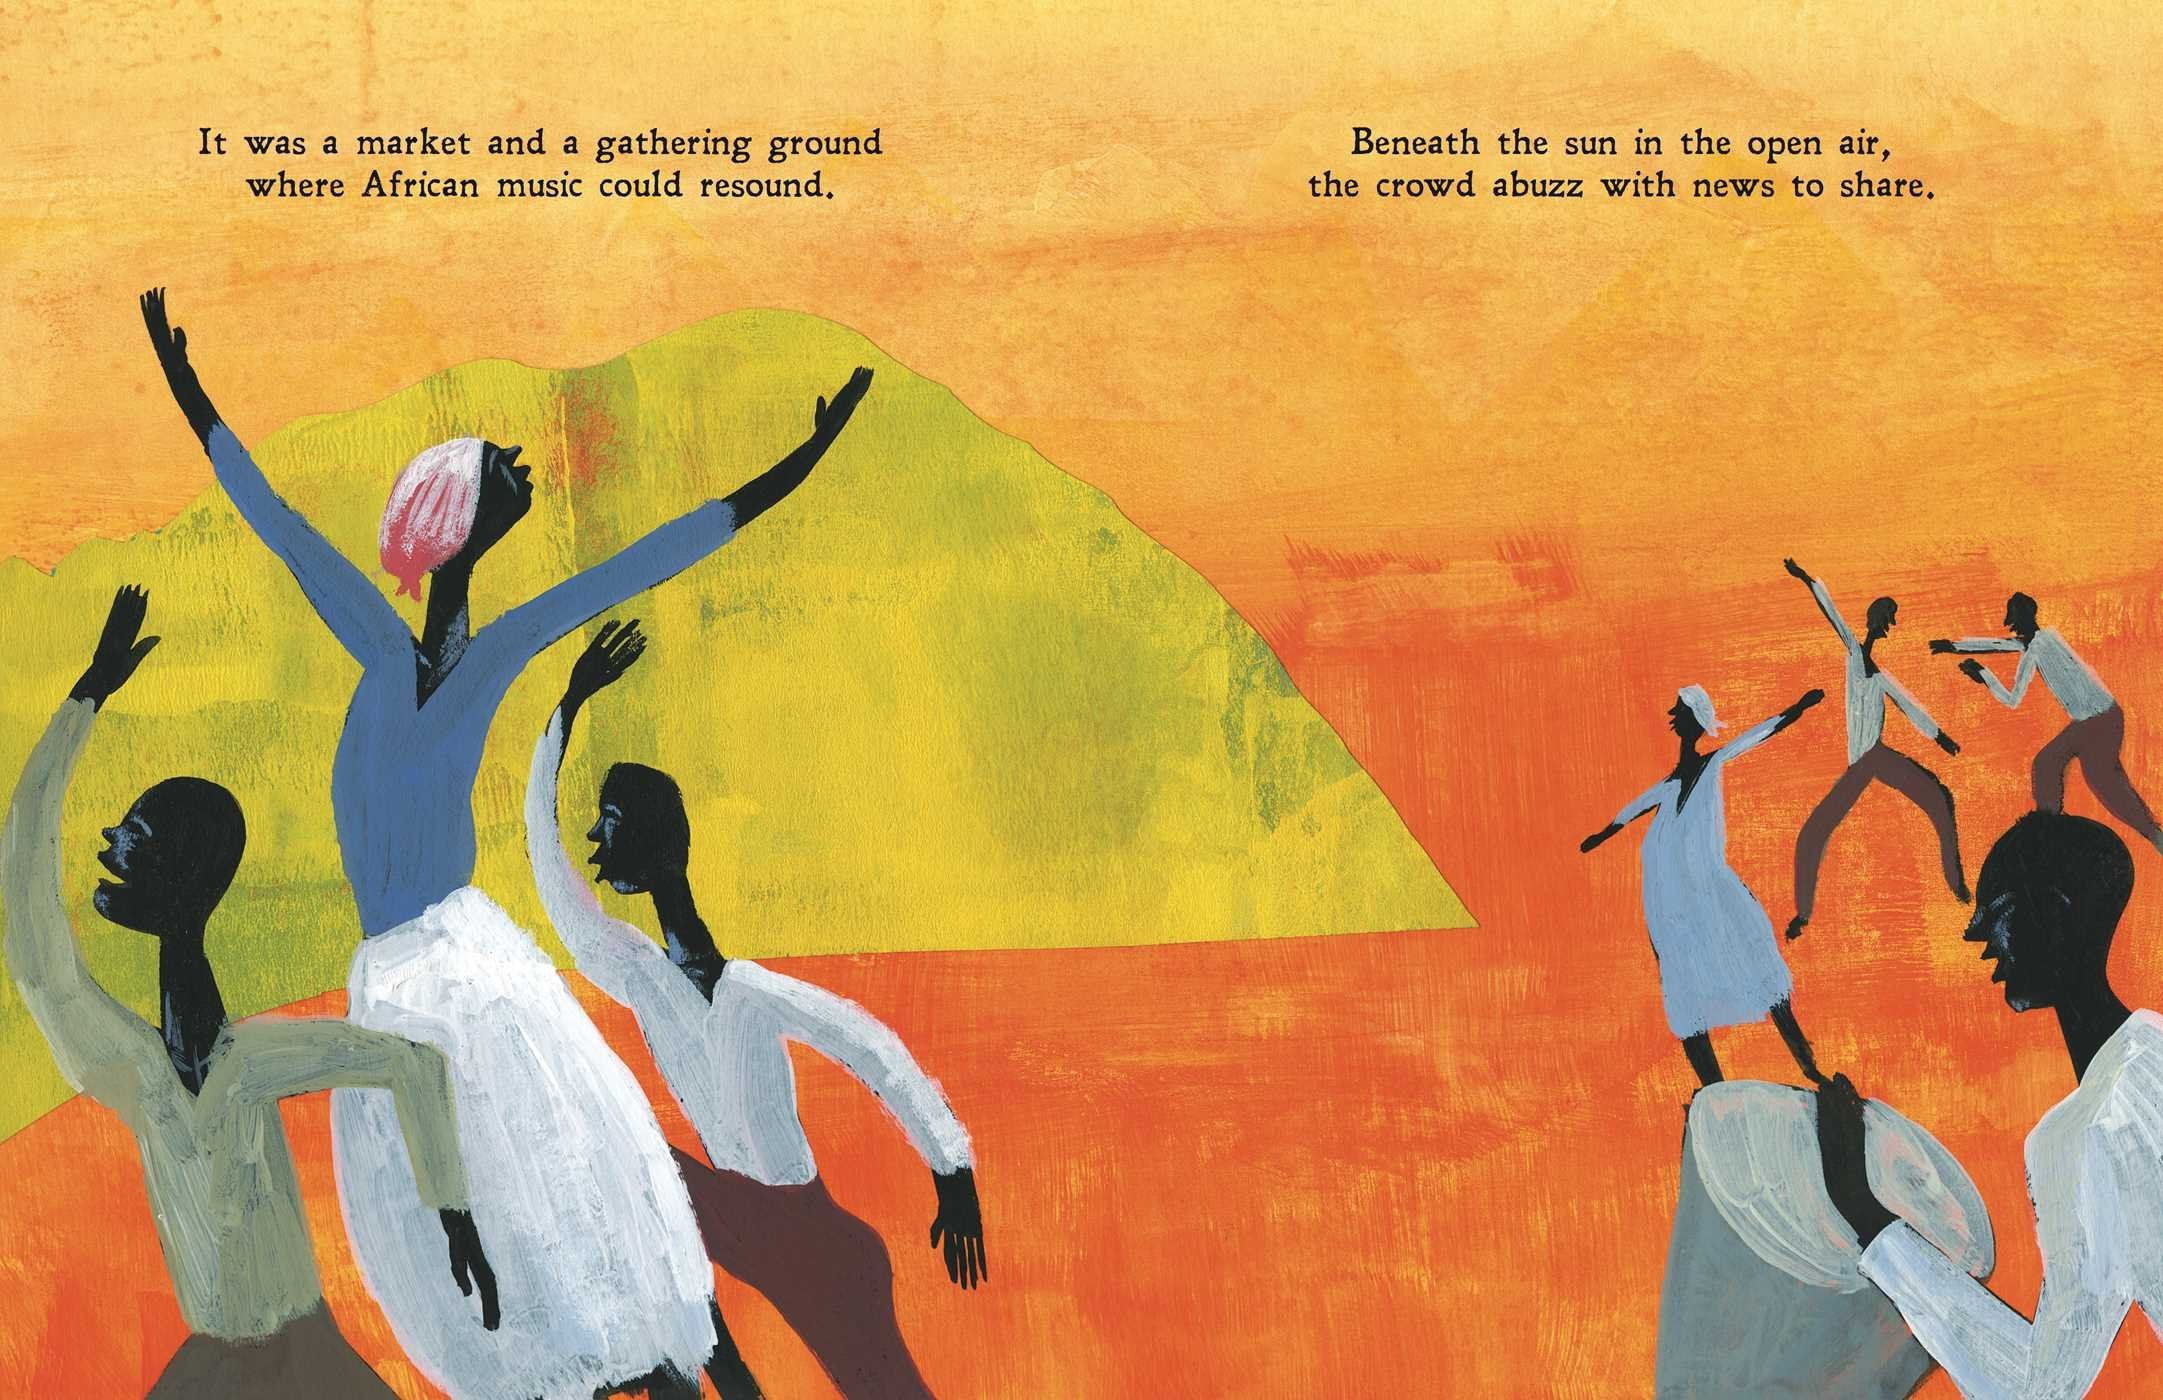 Freedom In Congo Square Carole Boston Weatherford R Gregory Christie Picture Book Illustration Childrens Illustrations